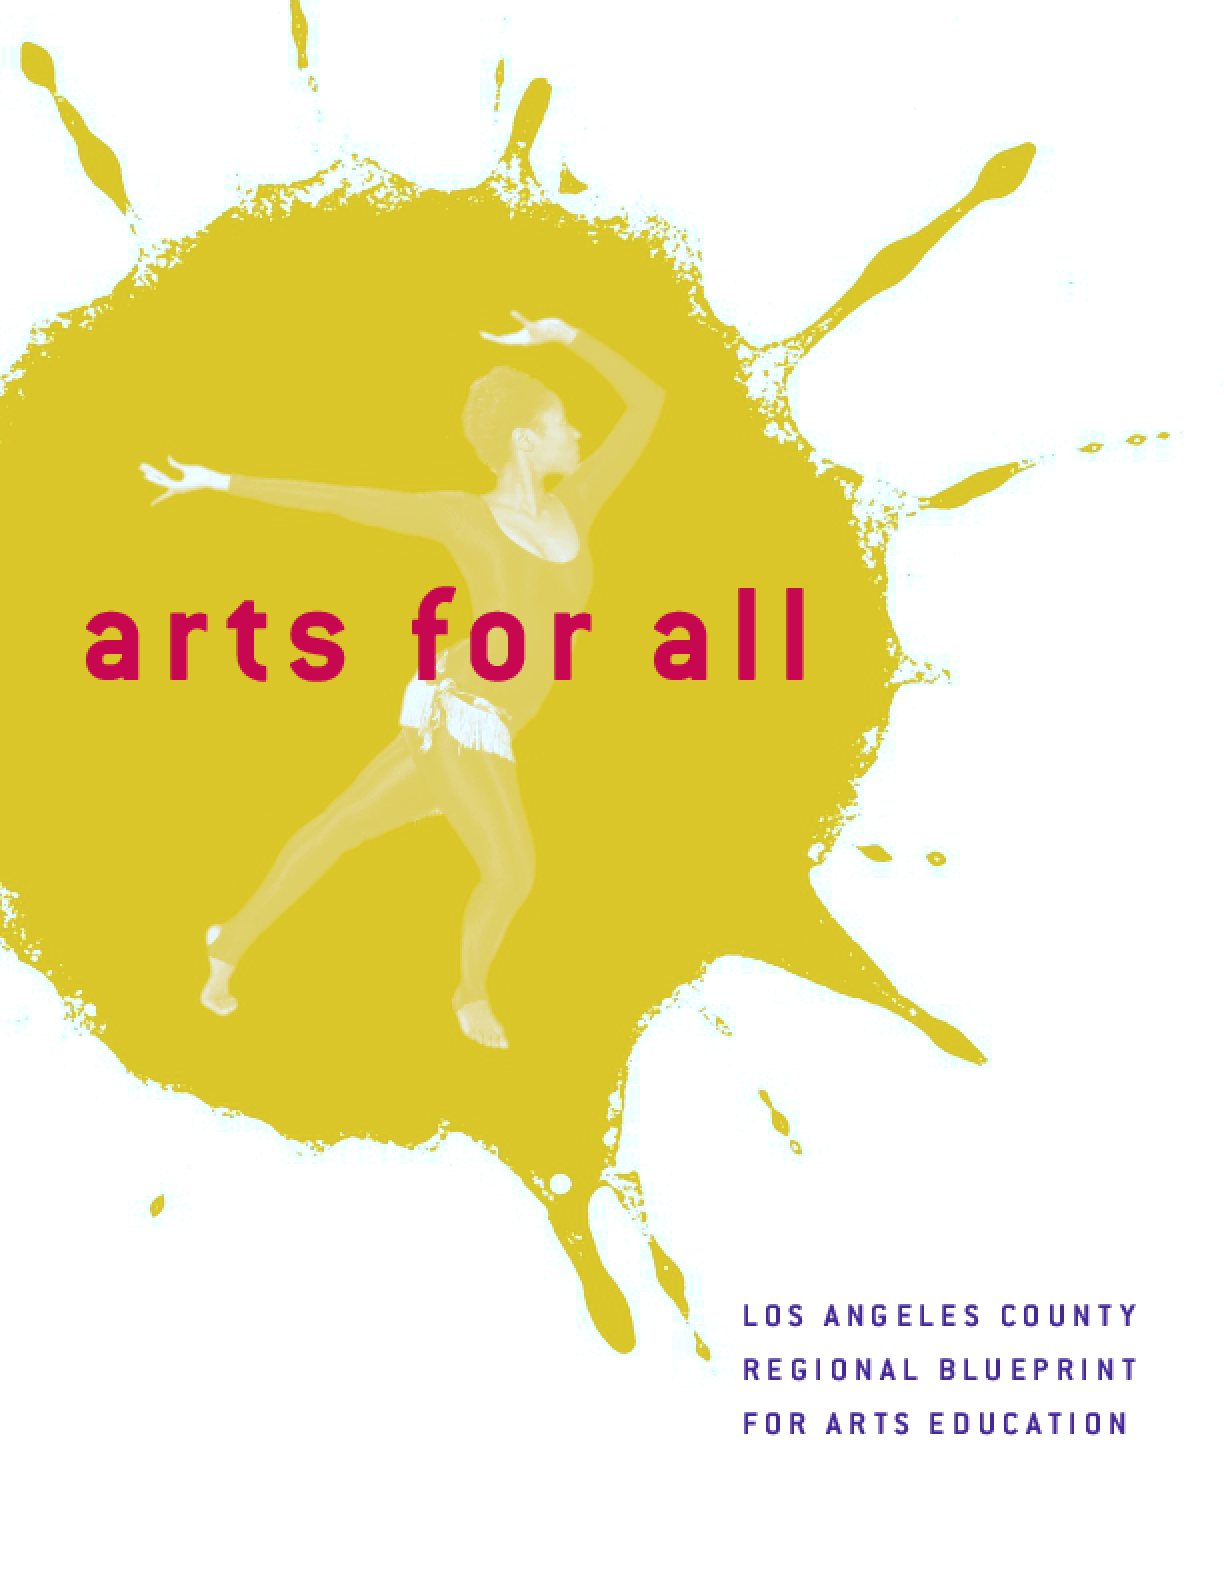 2002 Original Arts For All: Los Angeles County Regional Blueprint for Arts Education